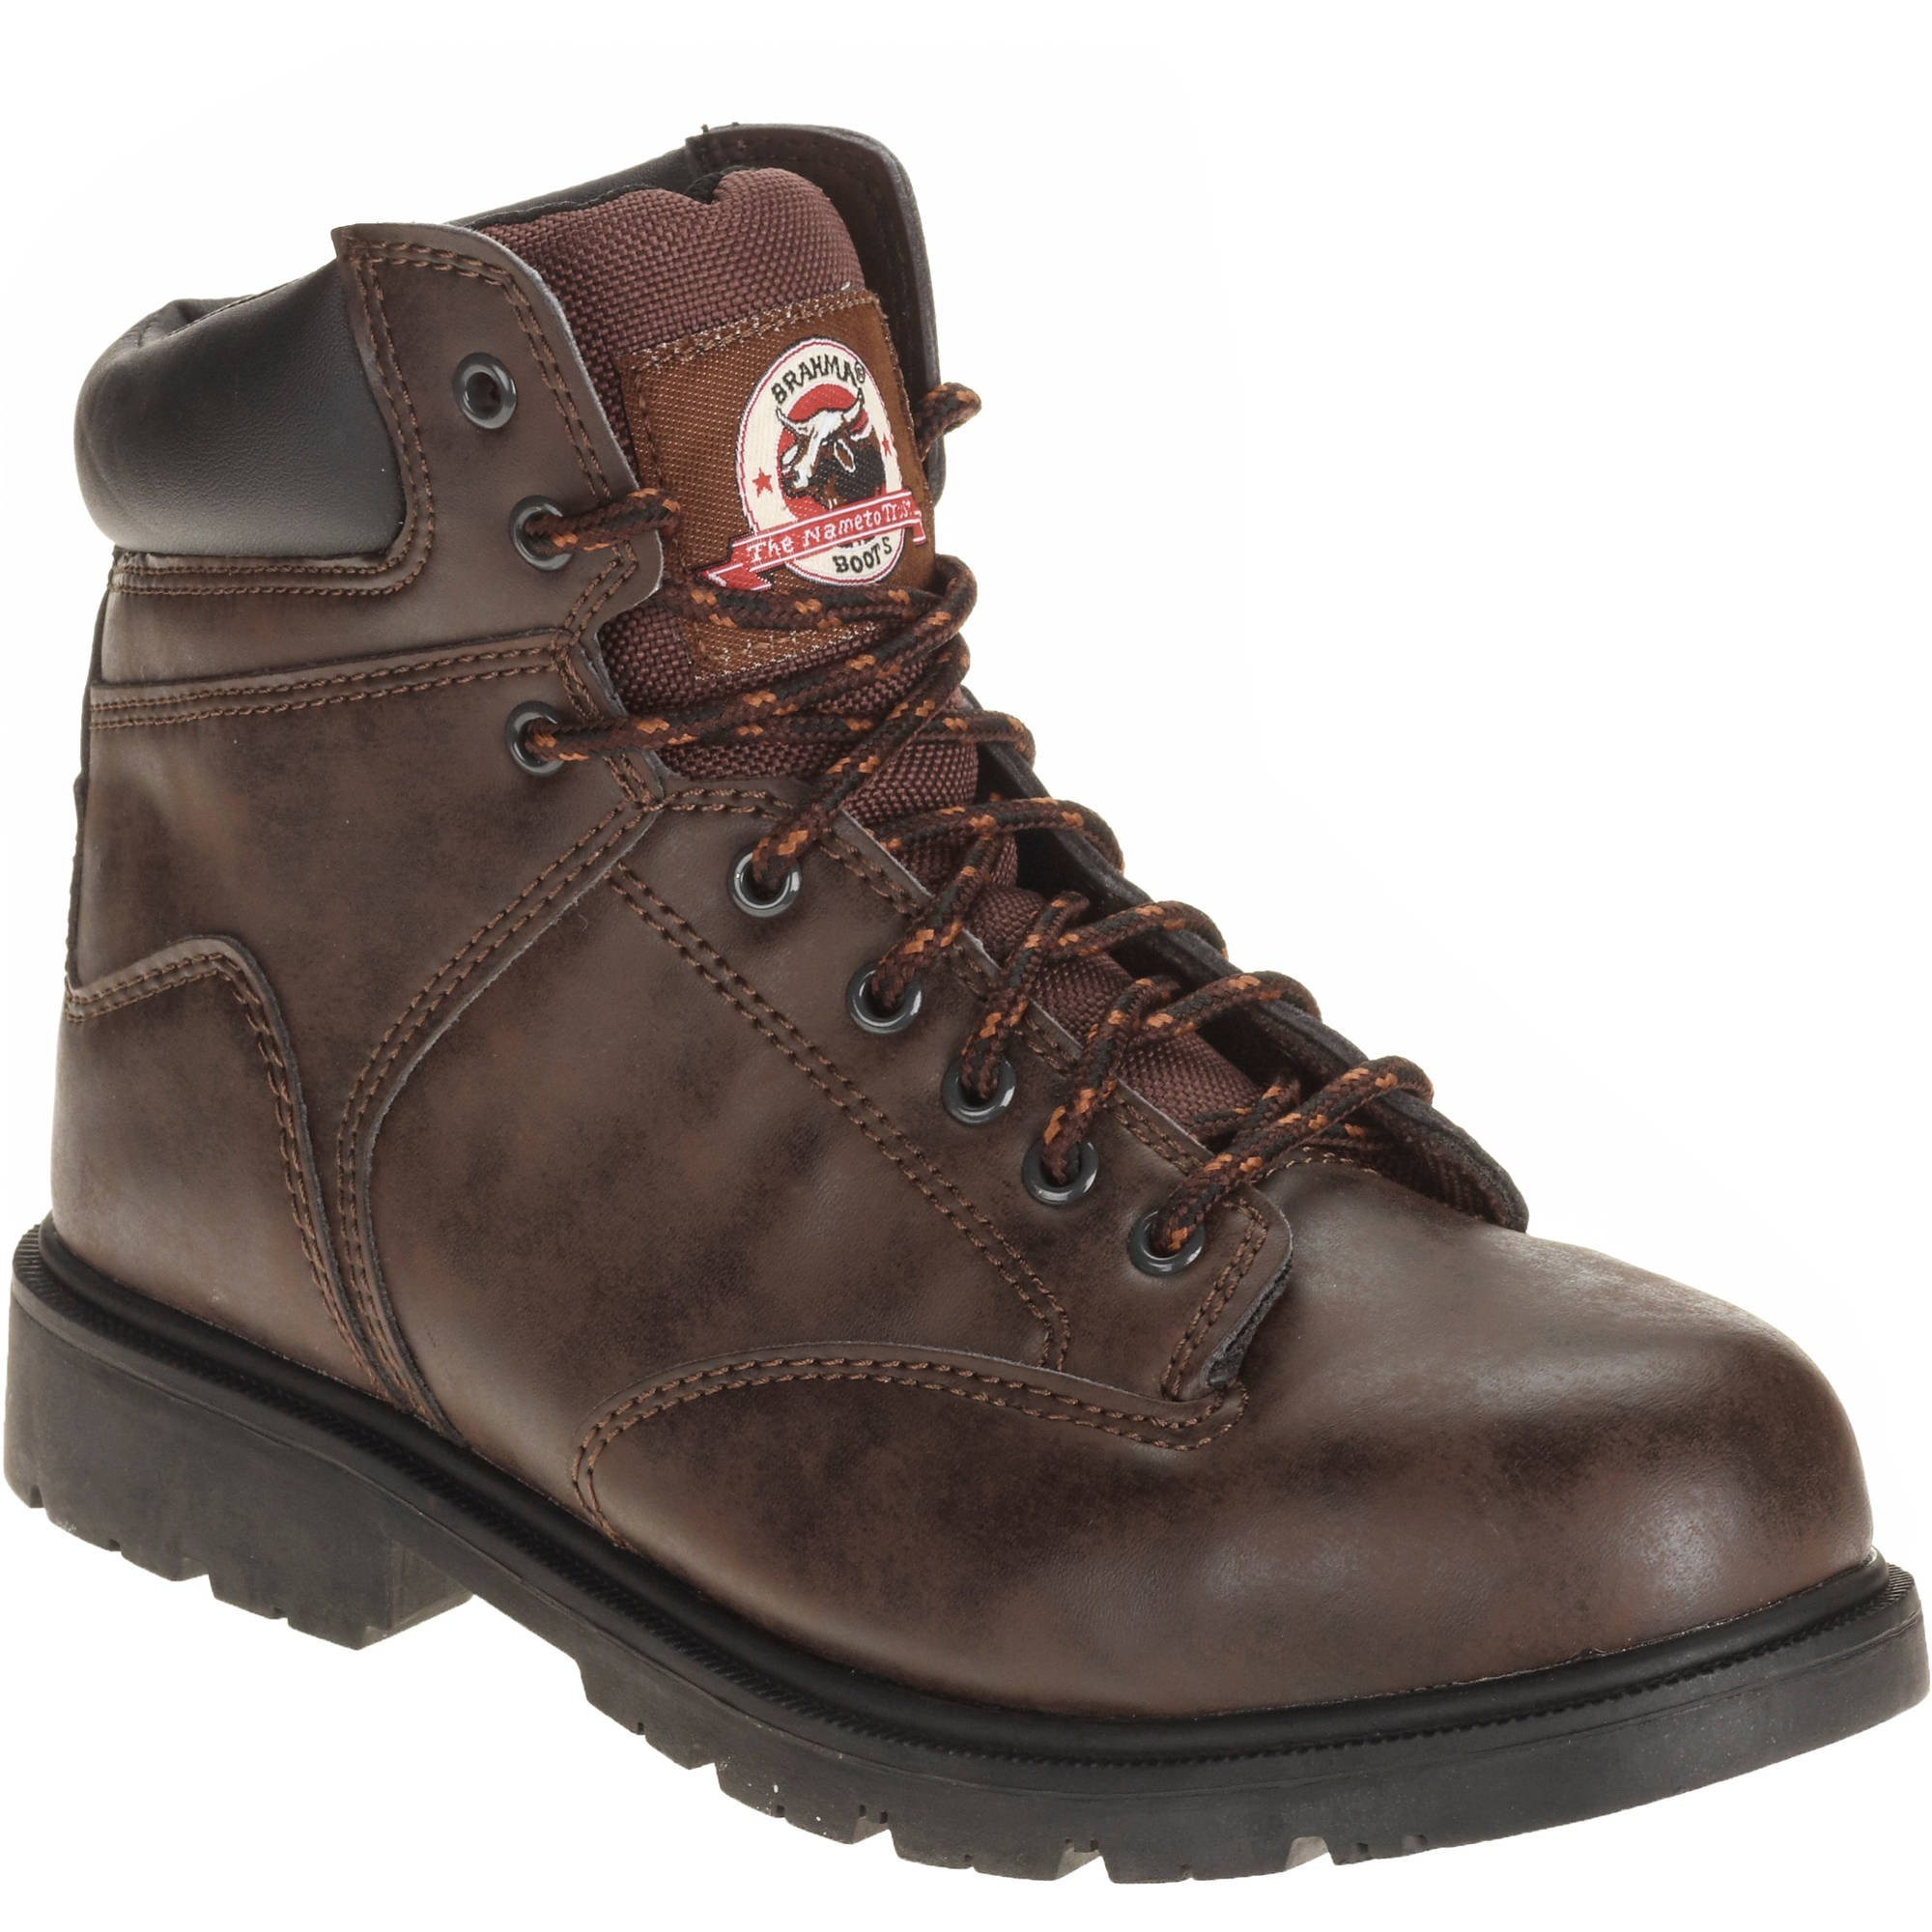 steel toe work boots for cheap 28 images cheap steel